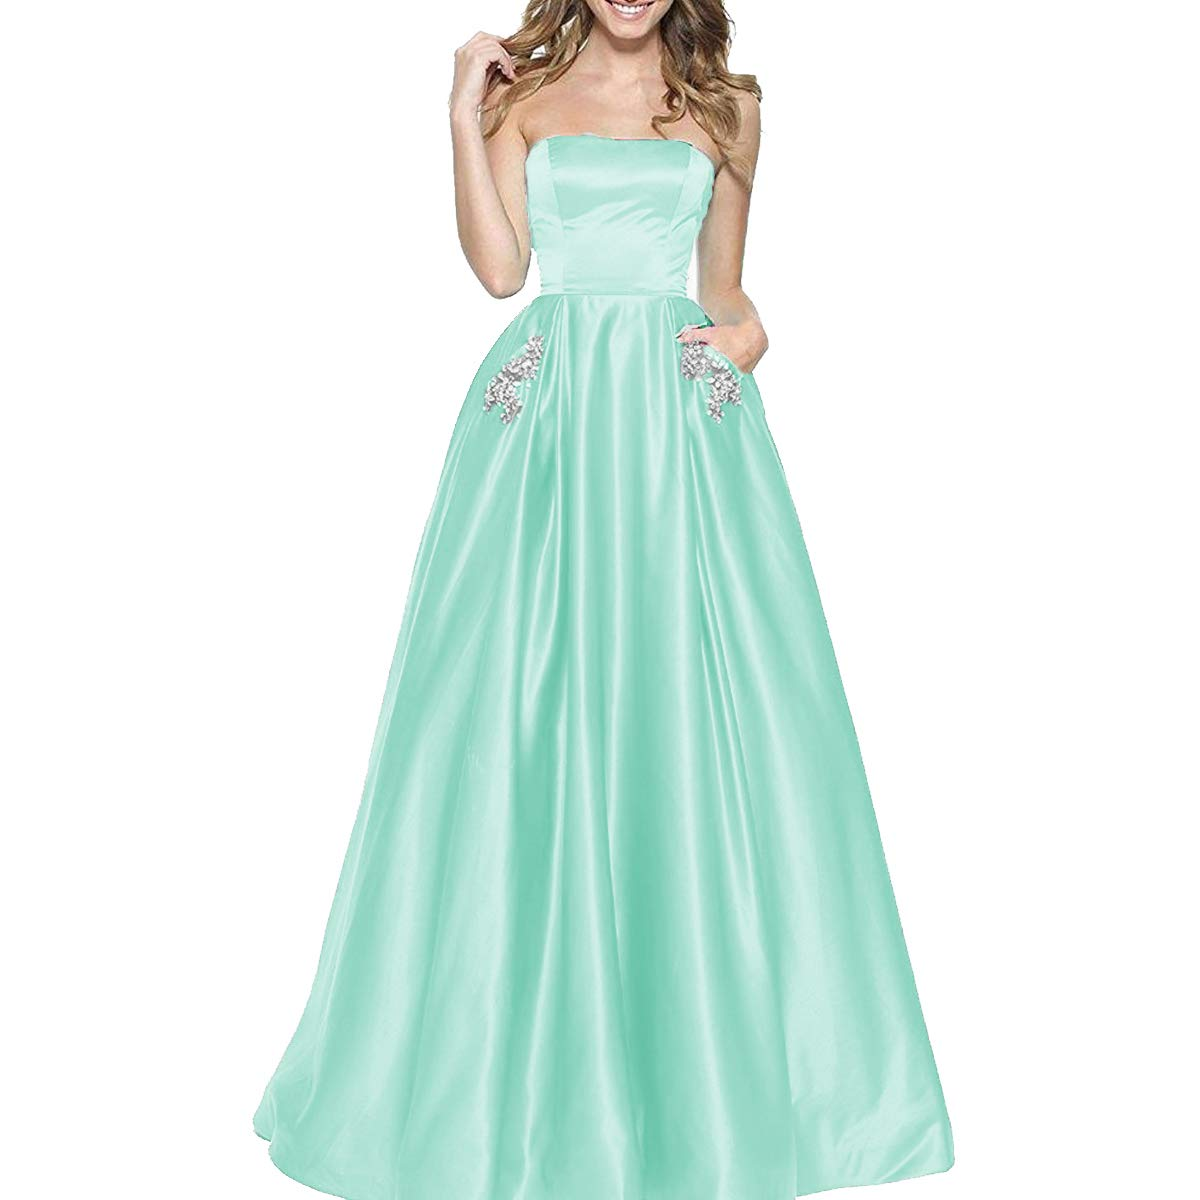 Mint TTYbridal Women's ALine Strapless Beaded Prom Dresses Long Satin Homecoming Party Gown with Pockets